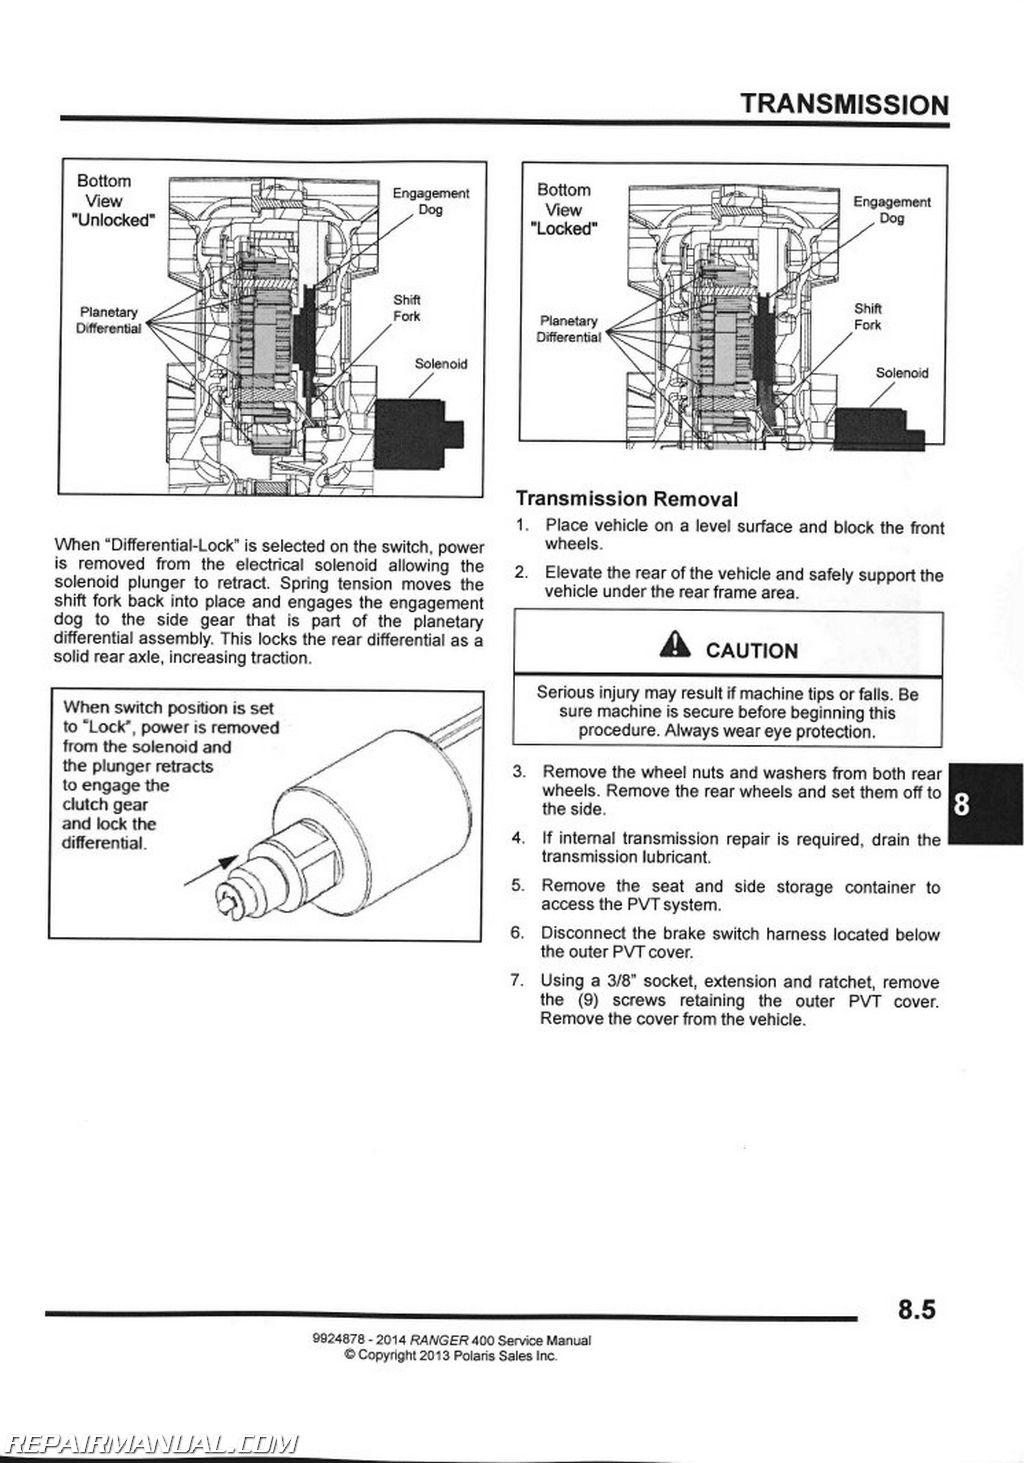 2014 Polaris Sportsman 400 Schematics Content Resource Of Wiring Diagram Ranger Side By Service Manual Rh Repairmanual Com Owners